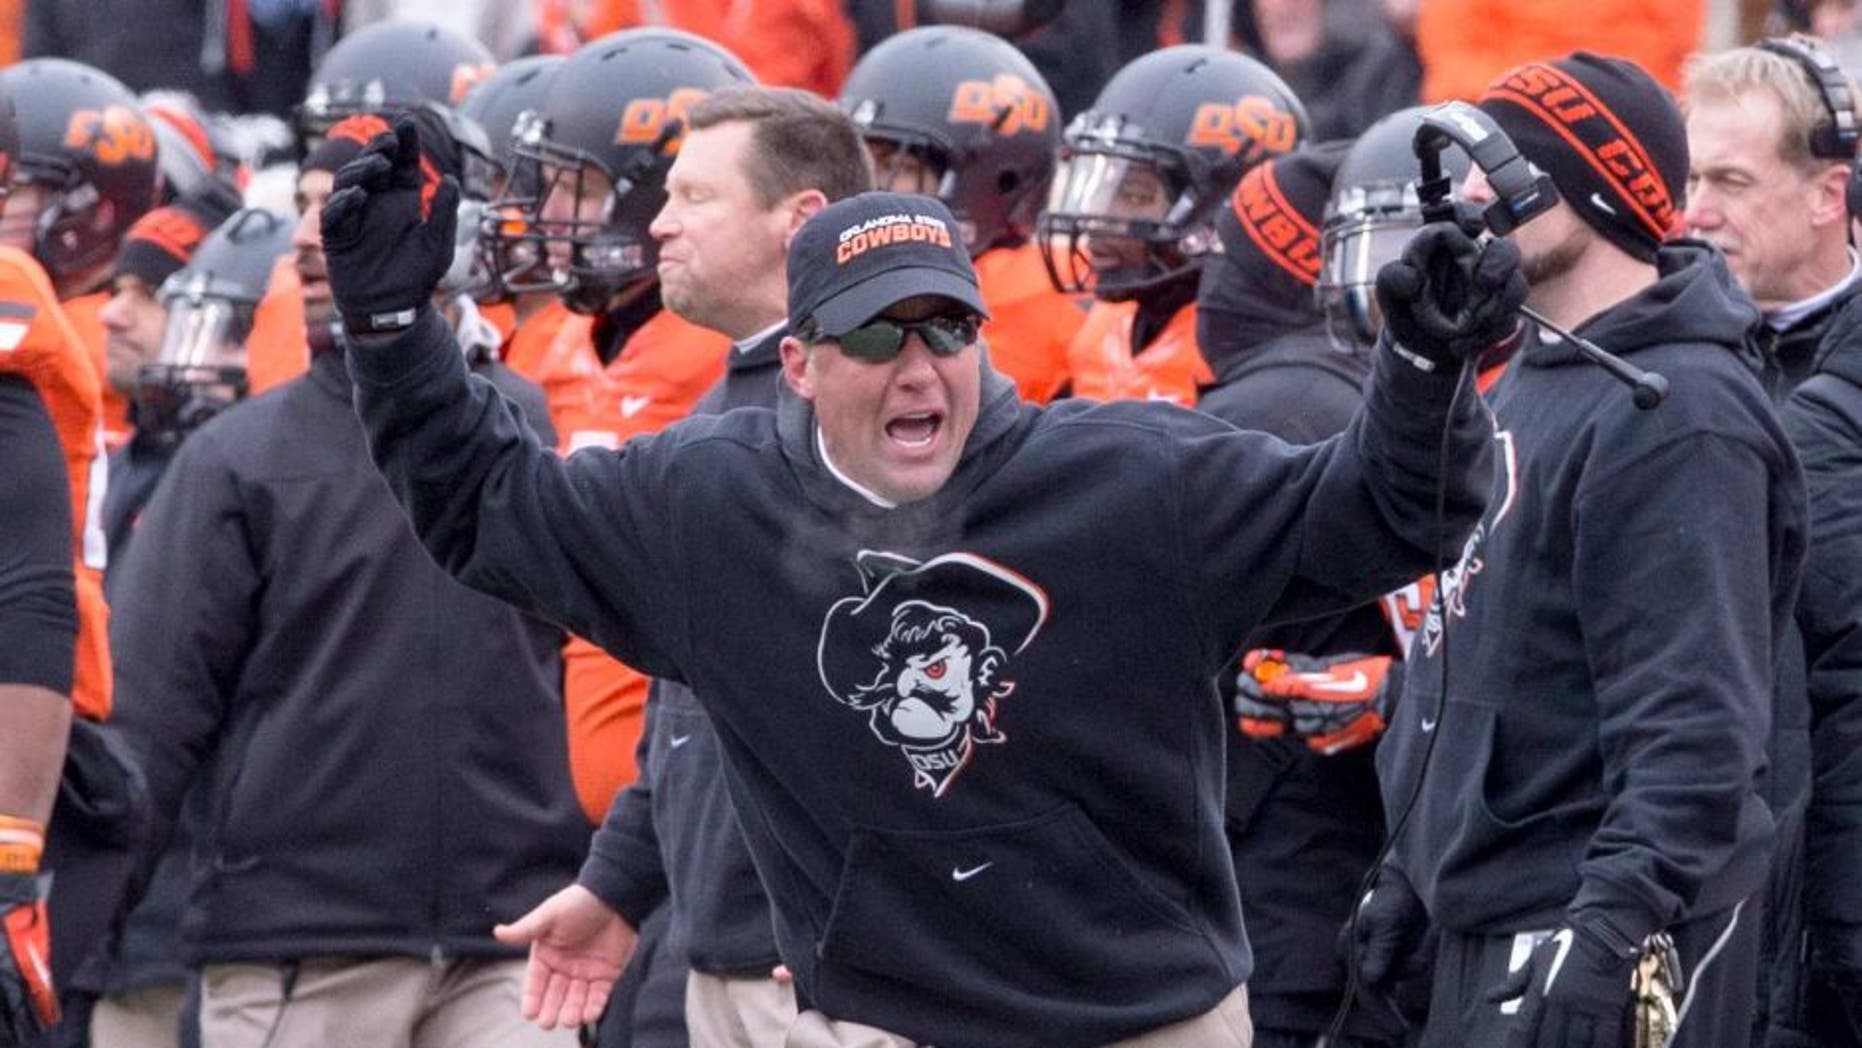 Dec 7, 2013; Stillwater, OK, USA; Oklahoma State Cowboys head coach Mike Gundy reacts to a call during the third quarter against the Oklahoma Sooners at Boone Pickens Stadium. Mandatory Credit: Richard Rowe-USA TODAY Sports